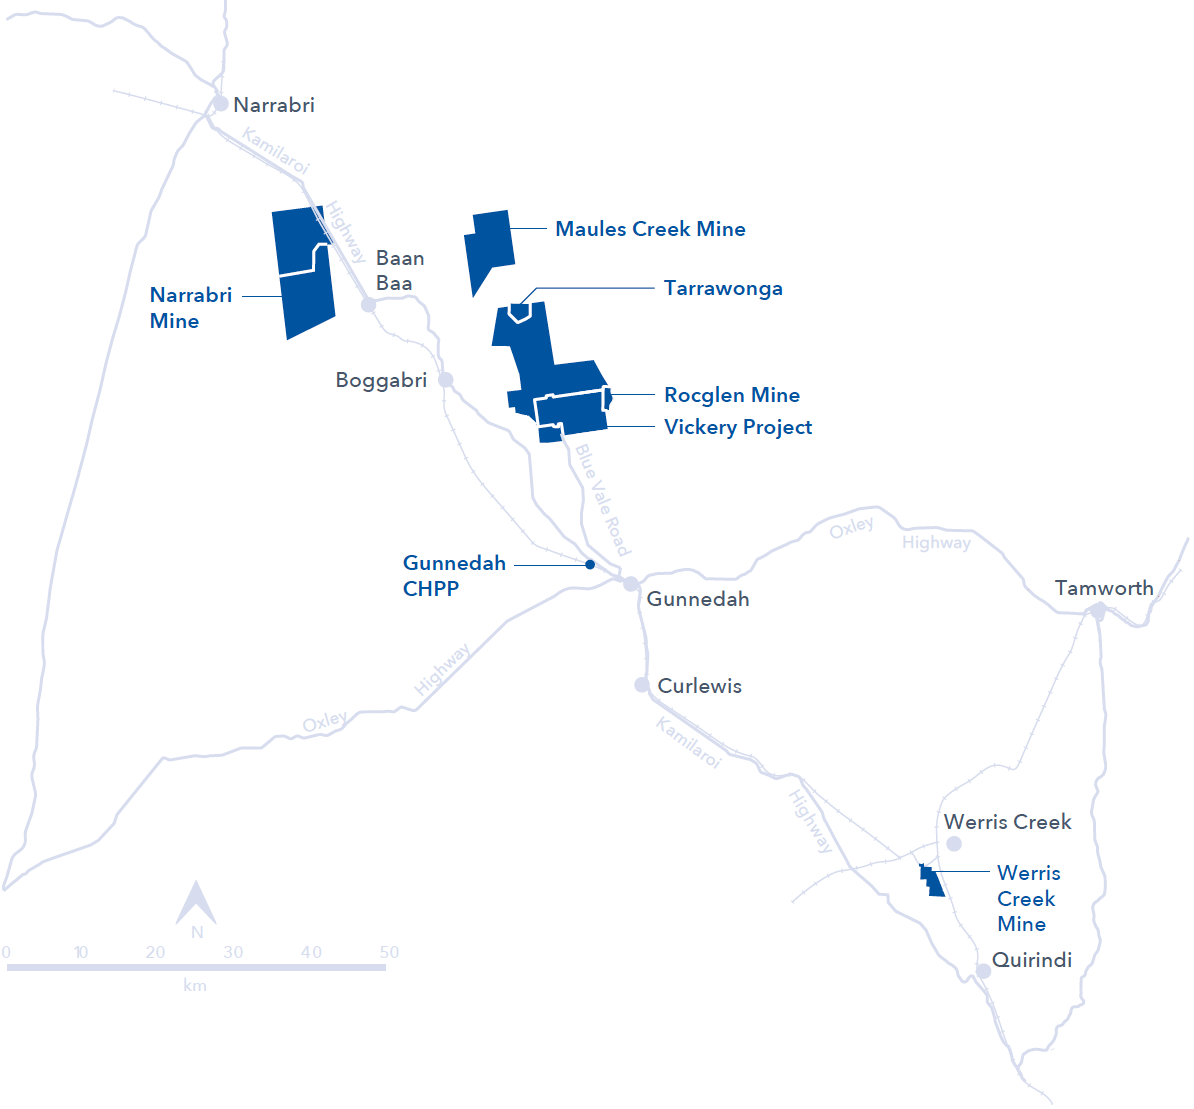 Mine Site Map Example: Whitehaven Coal Limited